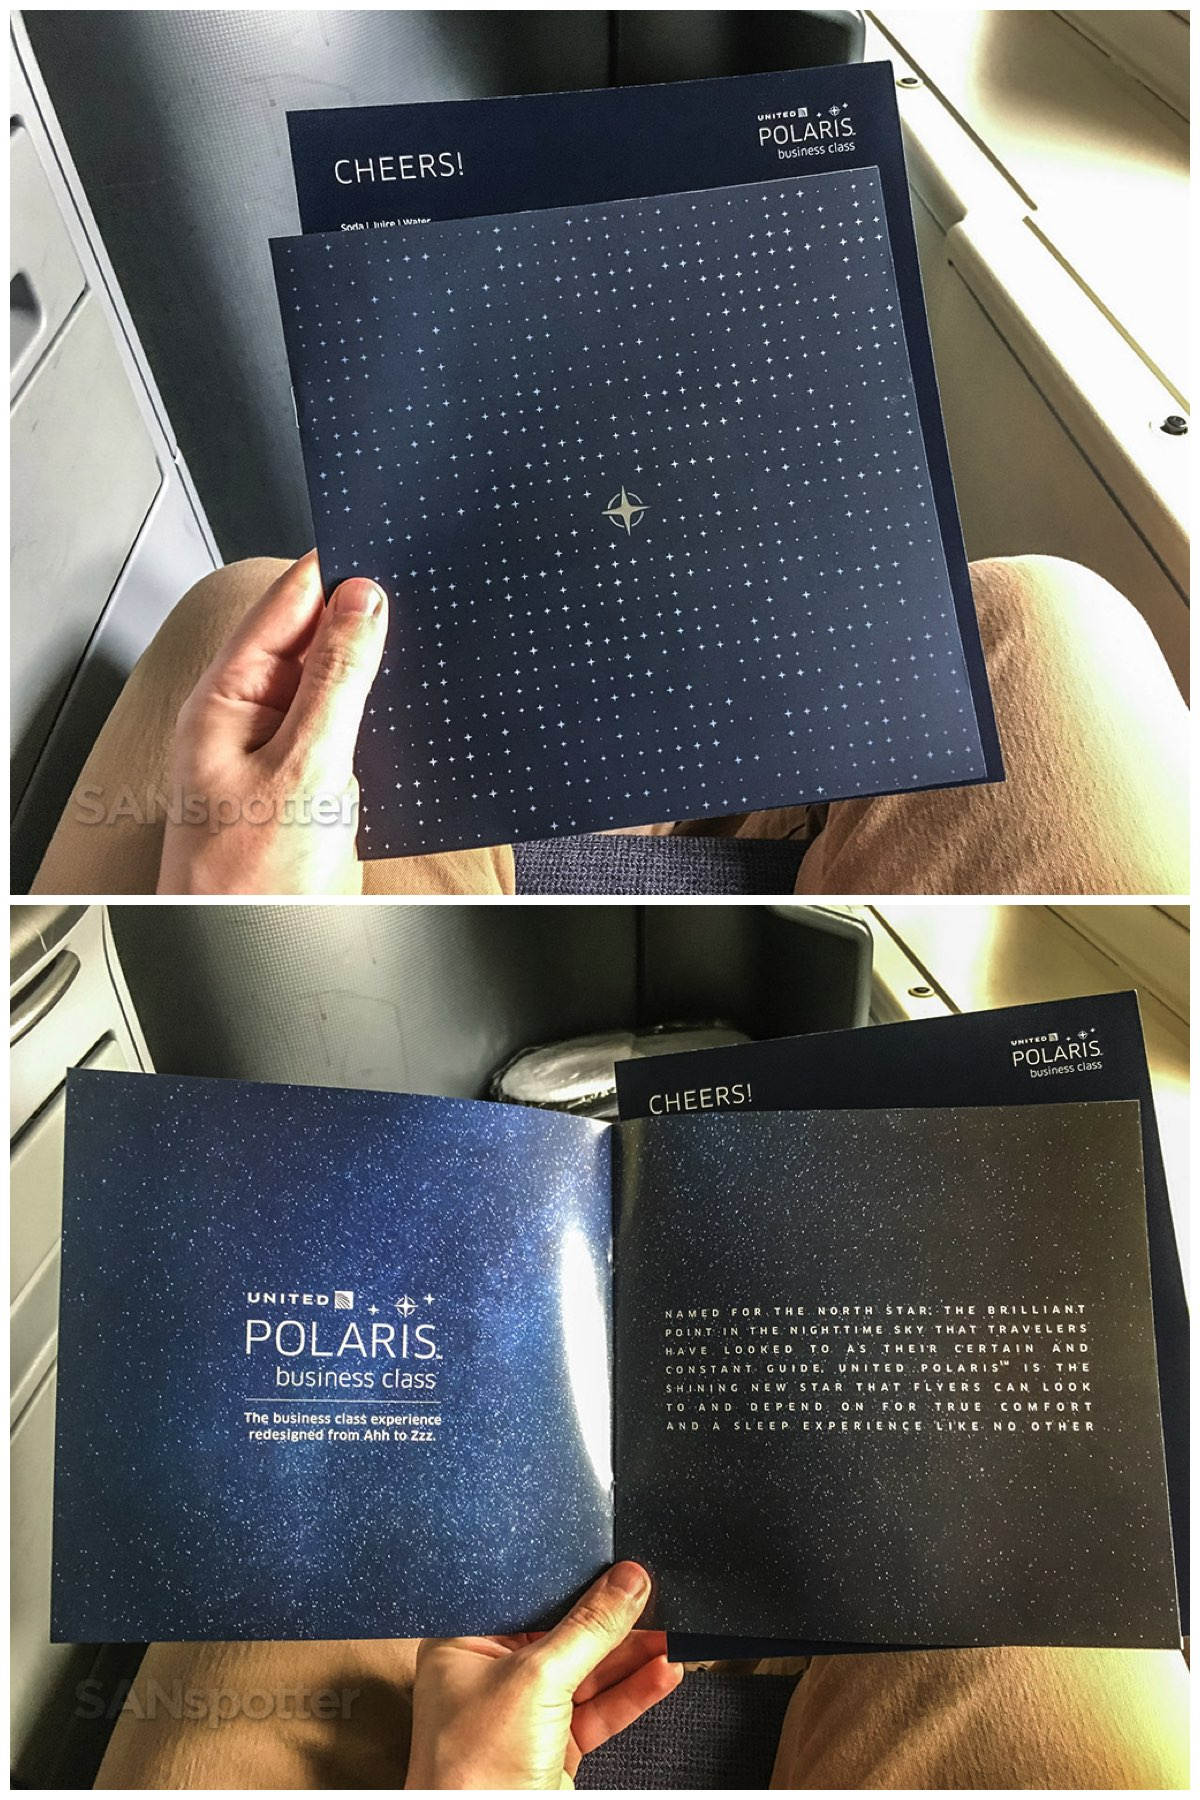 United Polaris business class menu